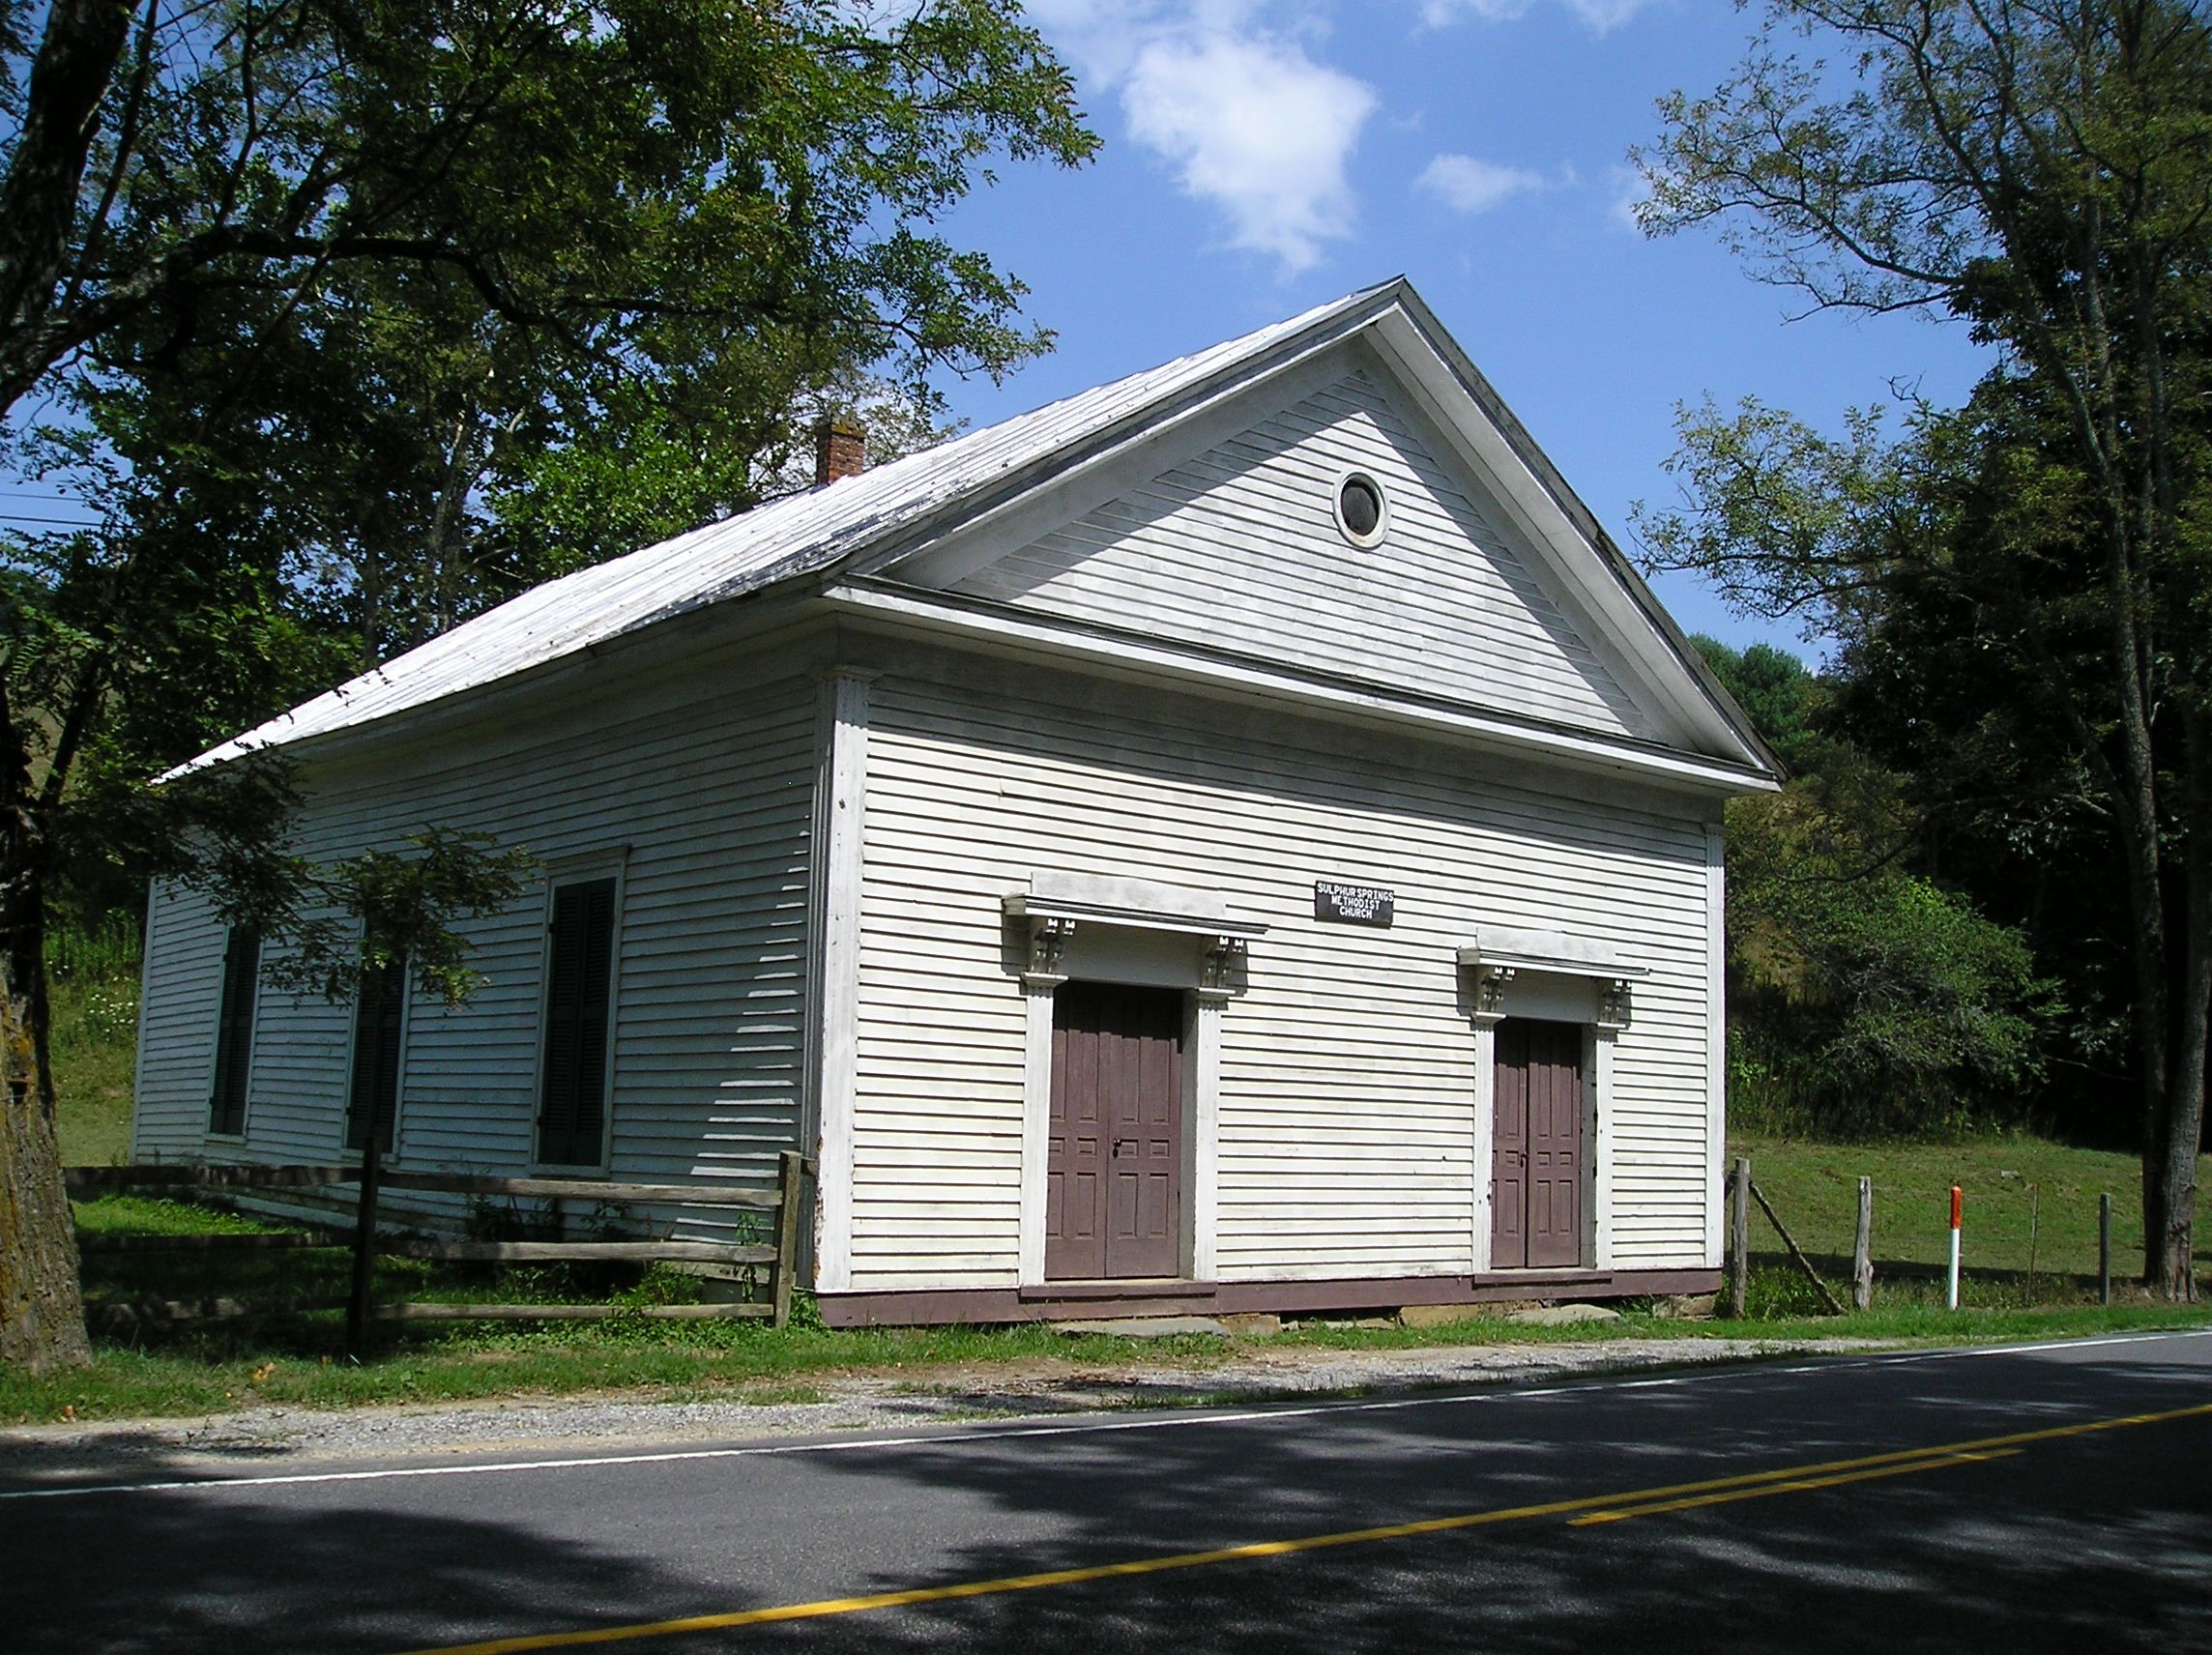 Sulphur springs methodist church with images home